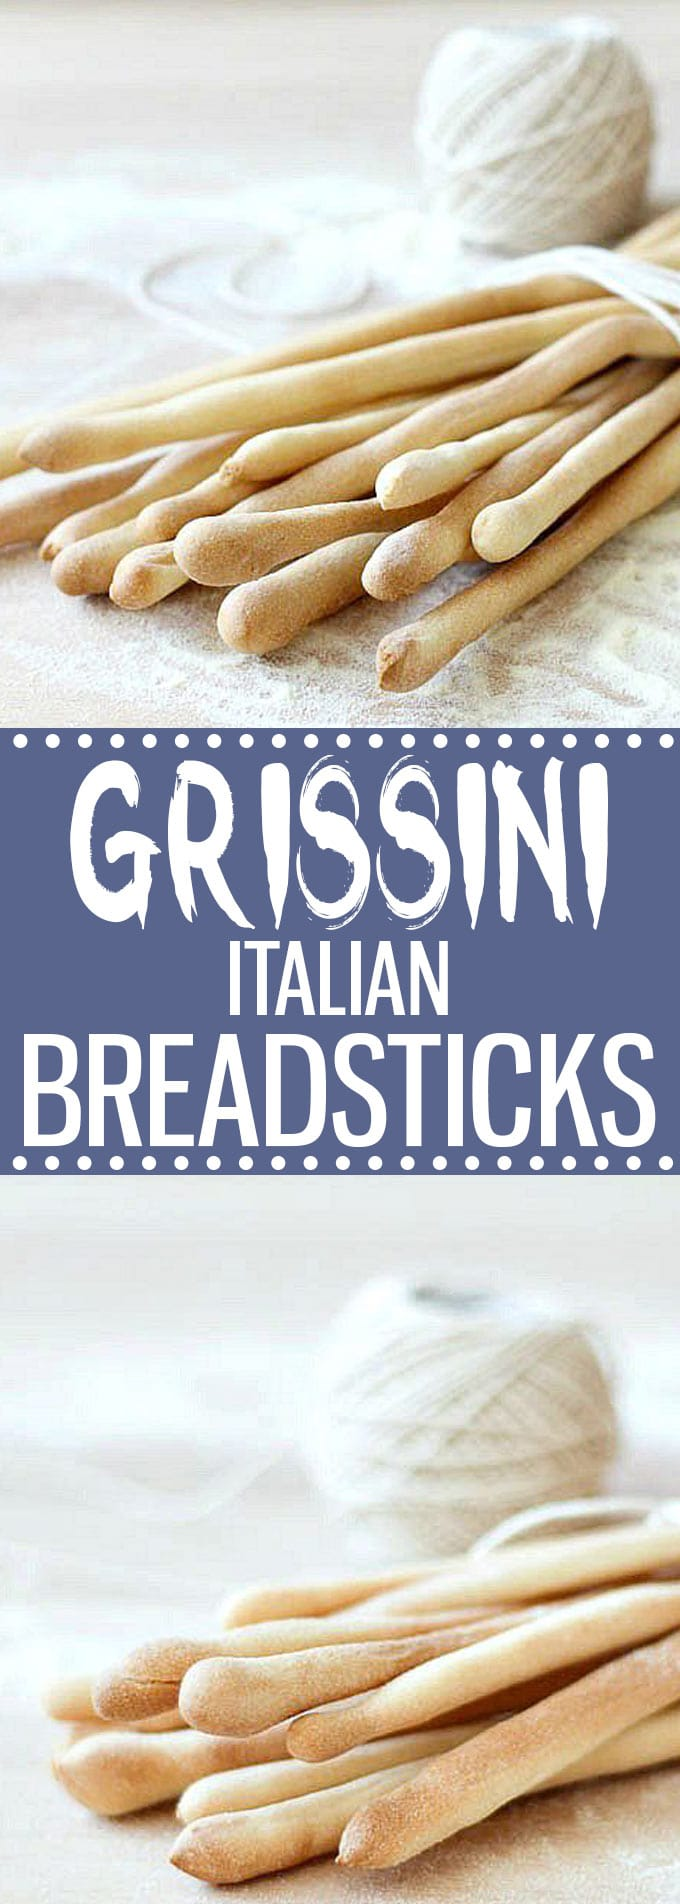 These grissini (Italian breadsticks) will not last long at your dinner table. Serve them with appetizers, dips or as a snack. Step by step tutorial. #italianfood #italianrecipes #breadsticks #grissini #easyrecipe